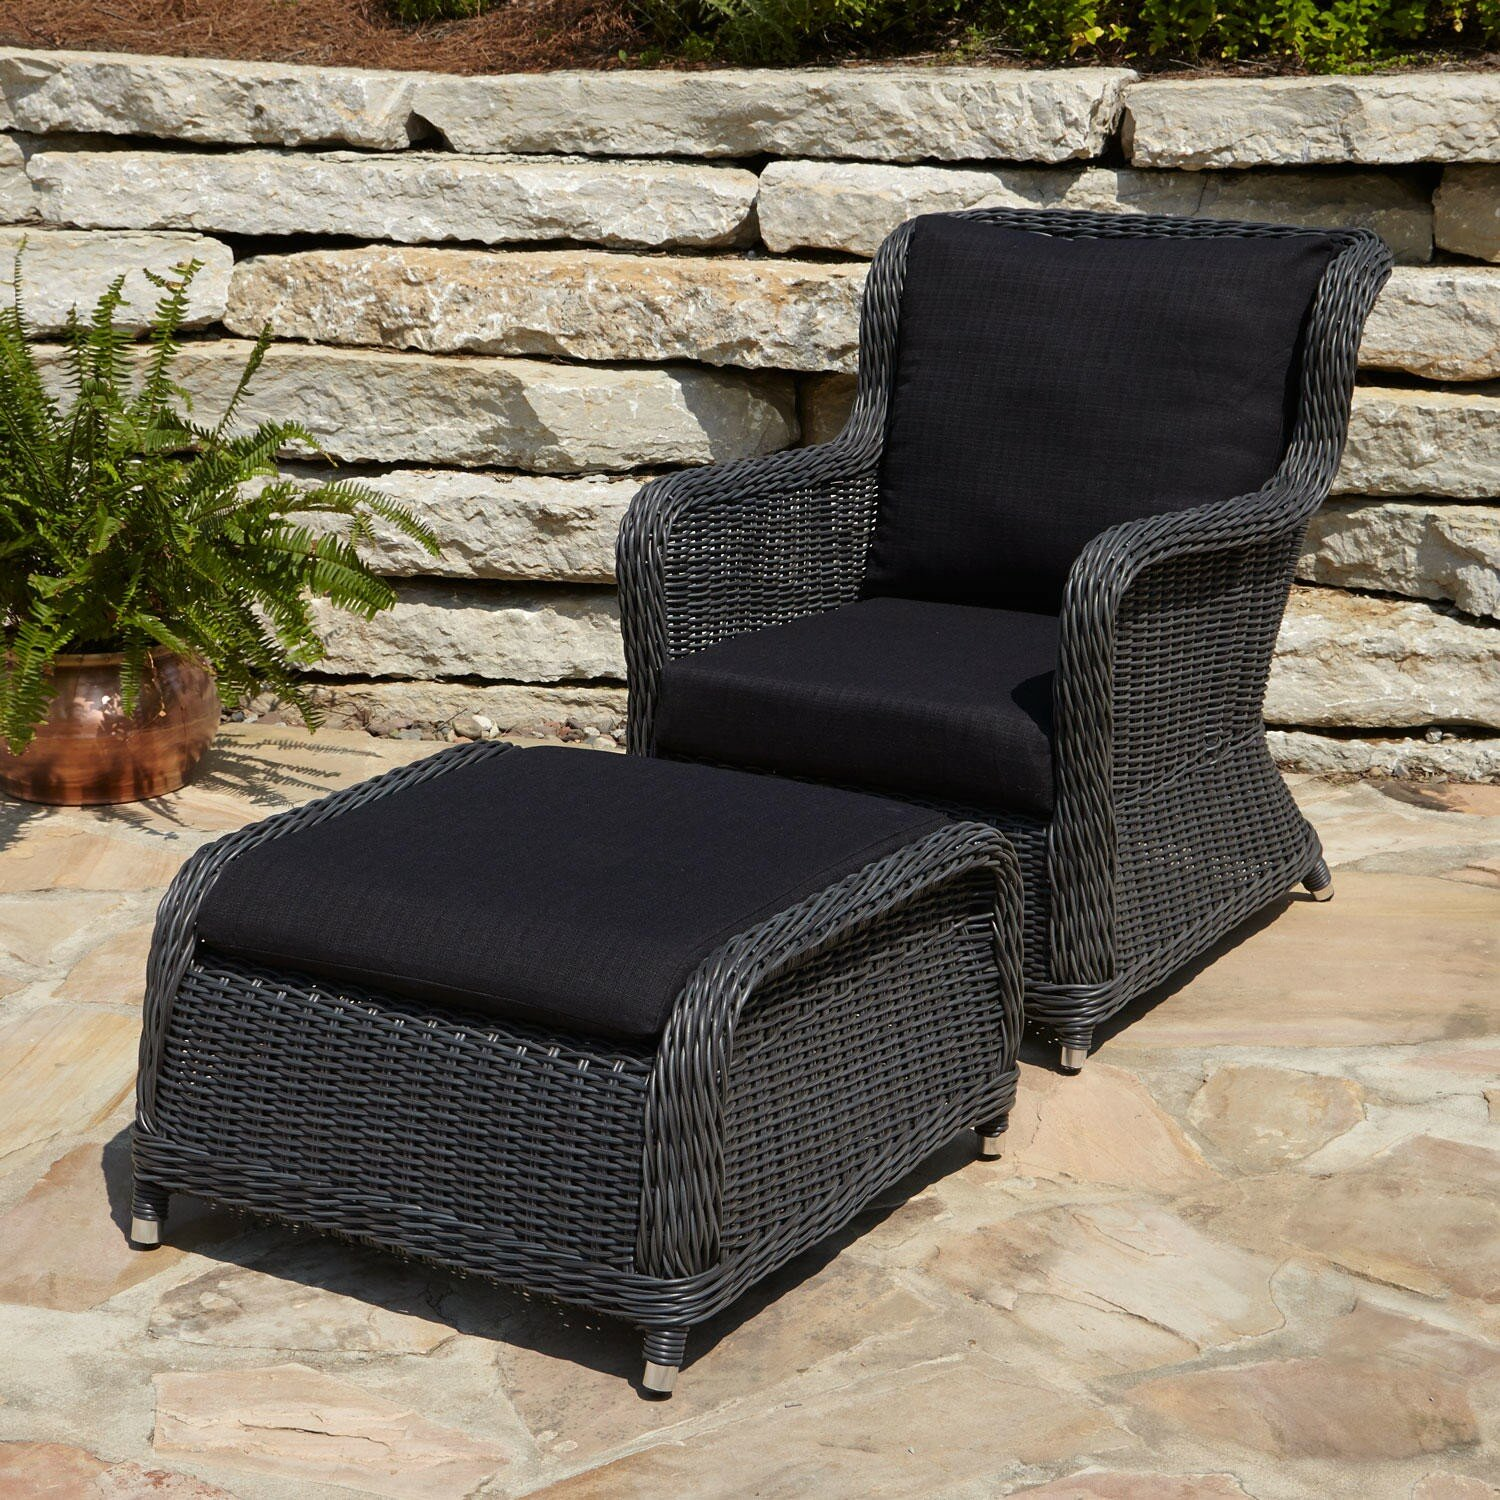 Lowes Lounge Chairs | Outdoor Chairs Lowes | Lounge Chairs Cheap